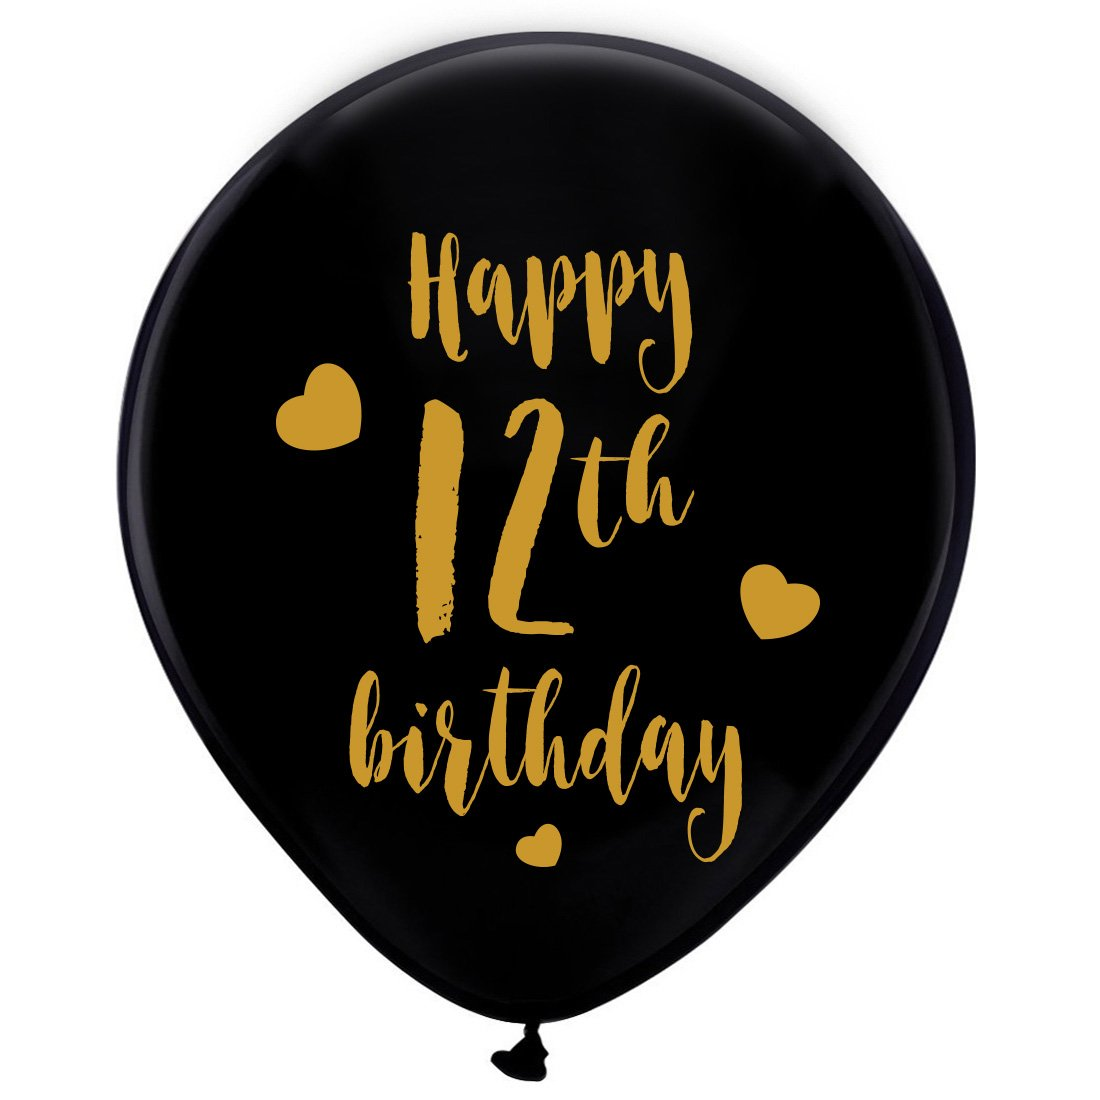 Amazon Black 12th Birthday Latex Balloons 12inch 16pcs Girl Boy Gold Happy Party Decorations Supplies Toys Games